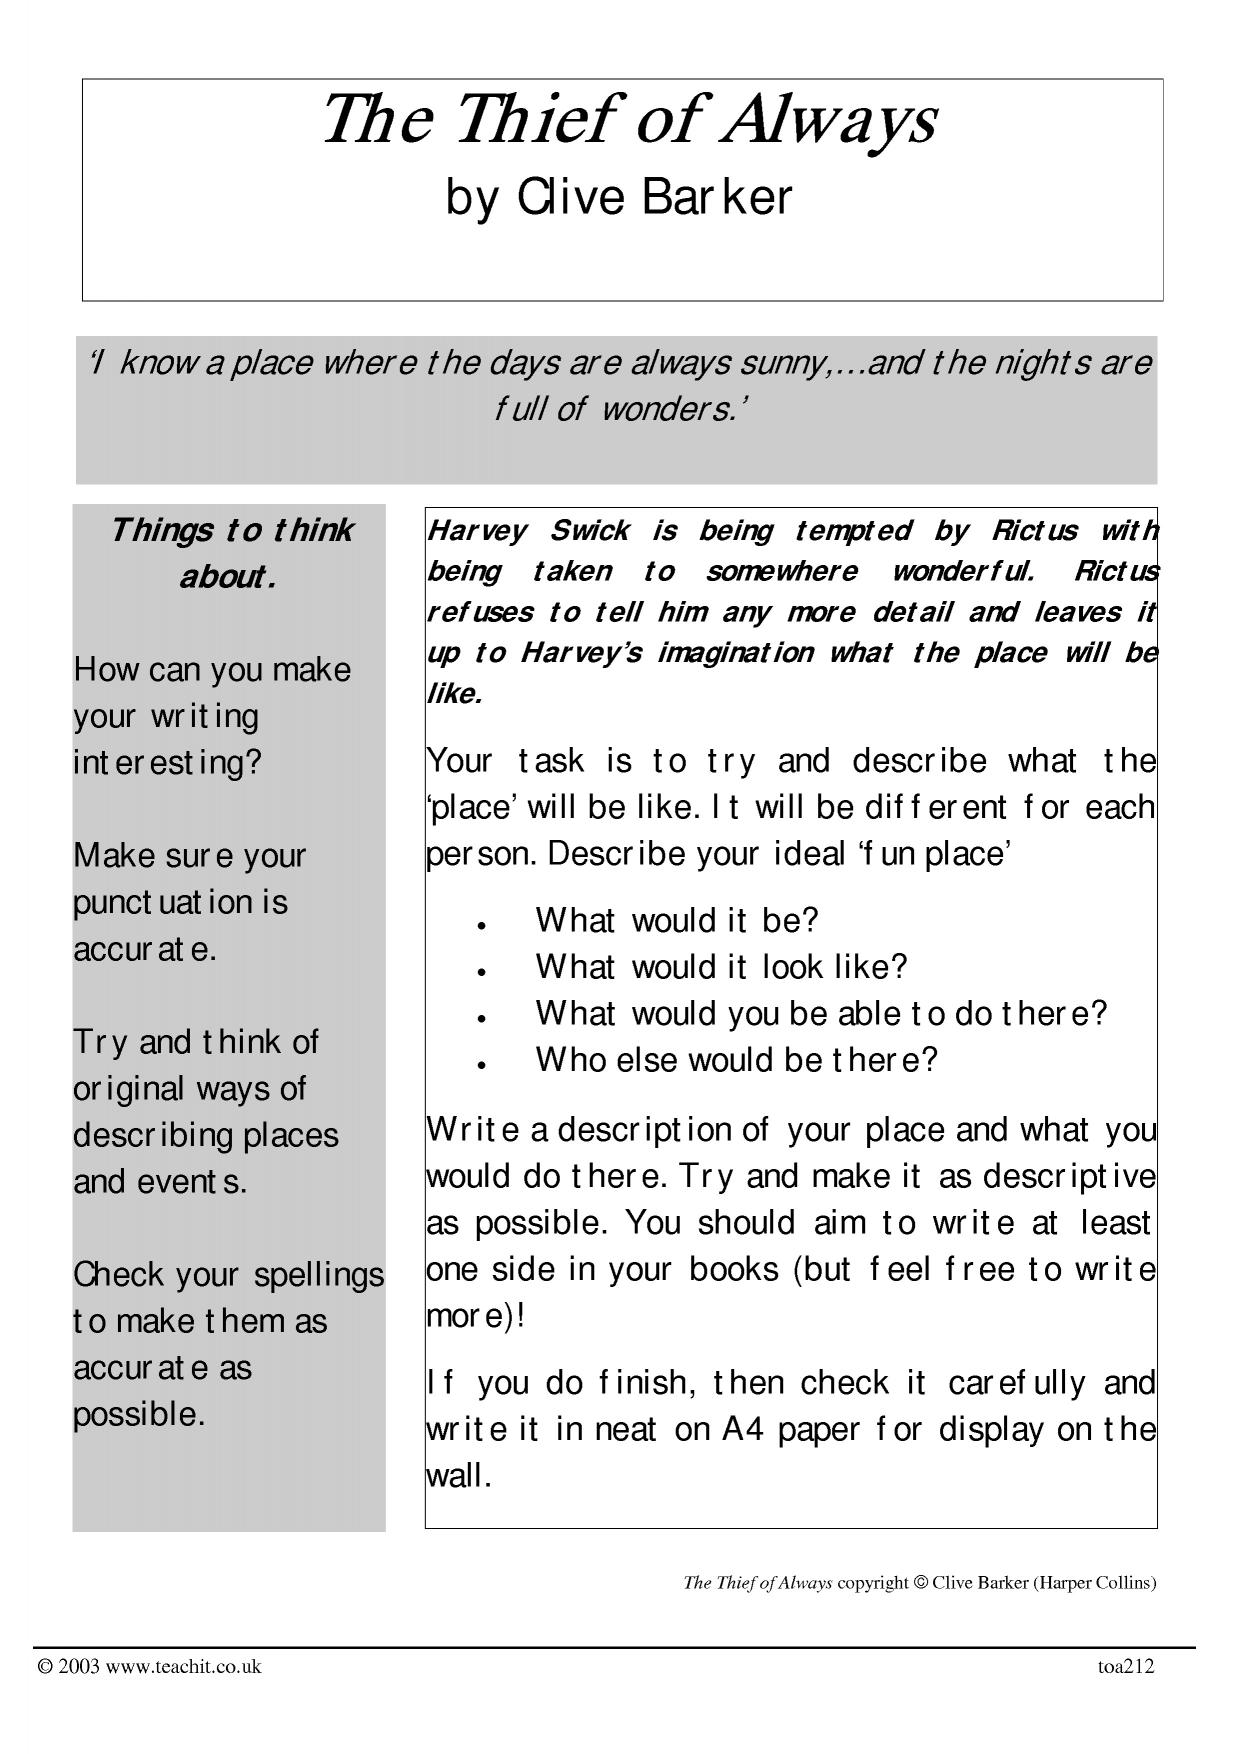 spoken lang lesson plan Lesson plan for speaking skills  students speaking a foreign language often feel shy to convey theirmessages so such activities will help them to raise their level.